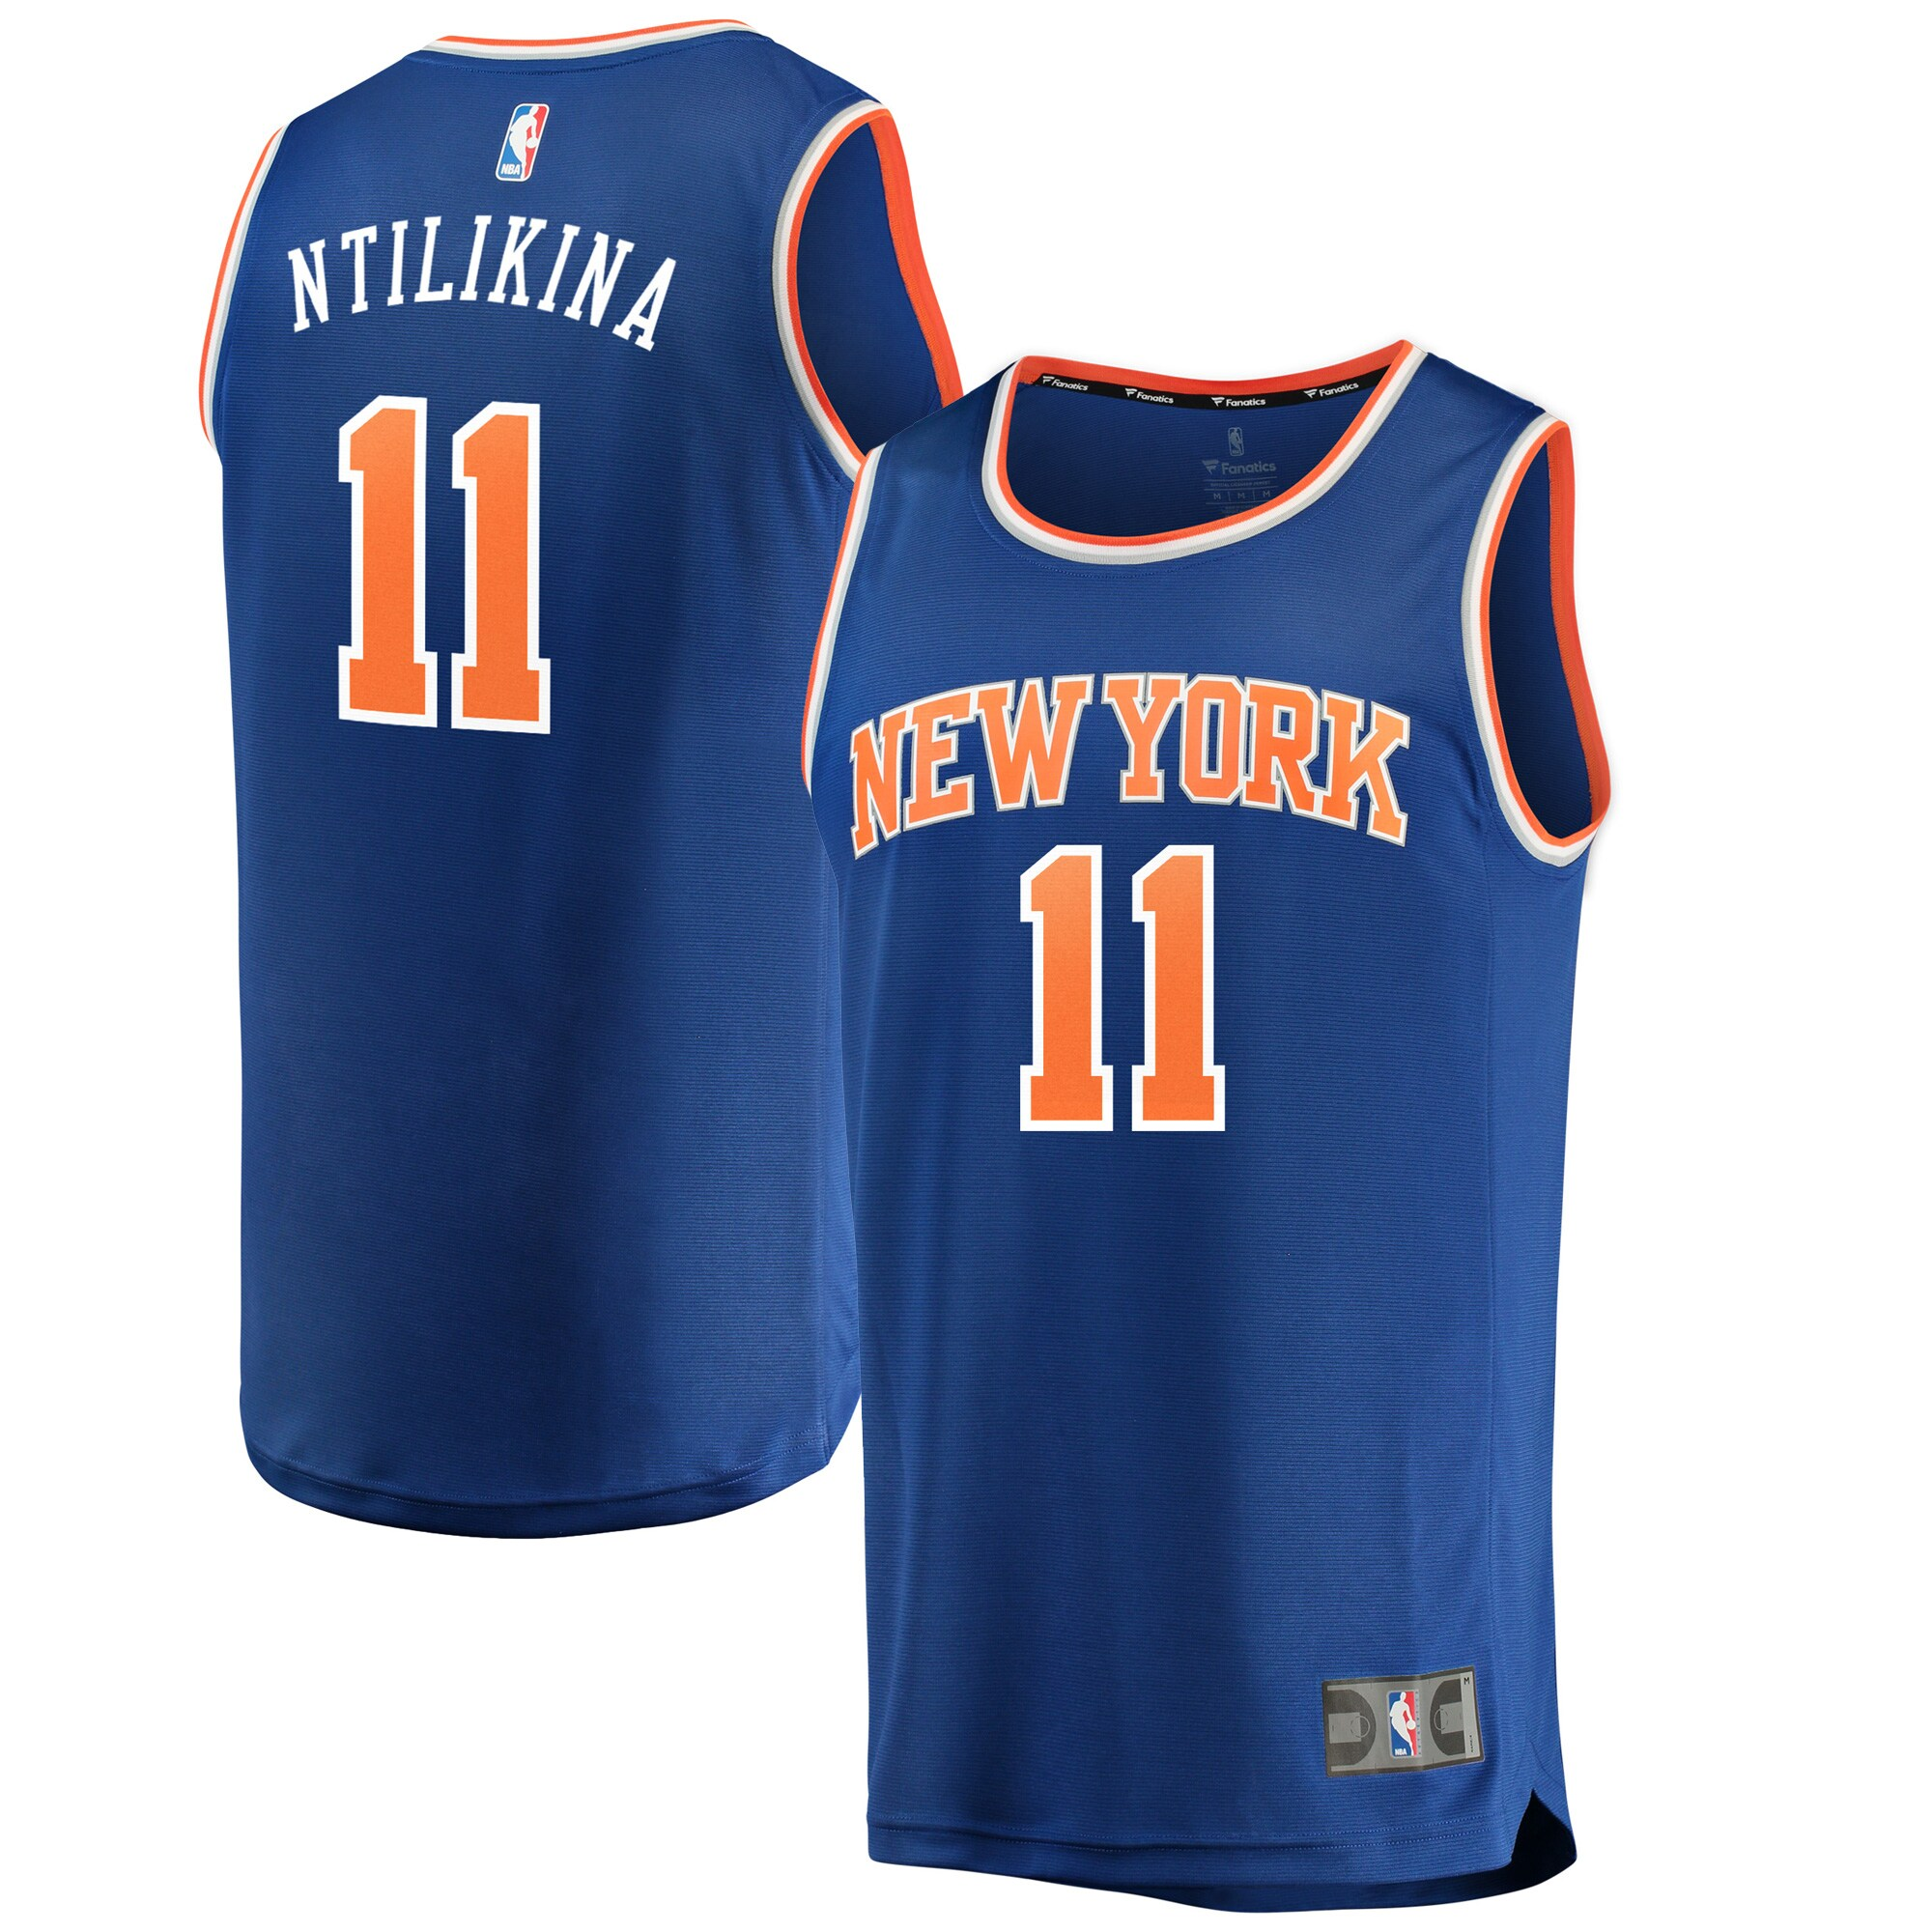 Frank Ntilikina New York Knicks Fanatics Branded Fast Break Replica Jersey Royal - Icon Edition